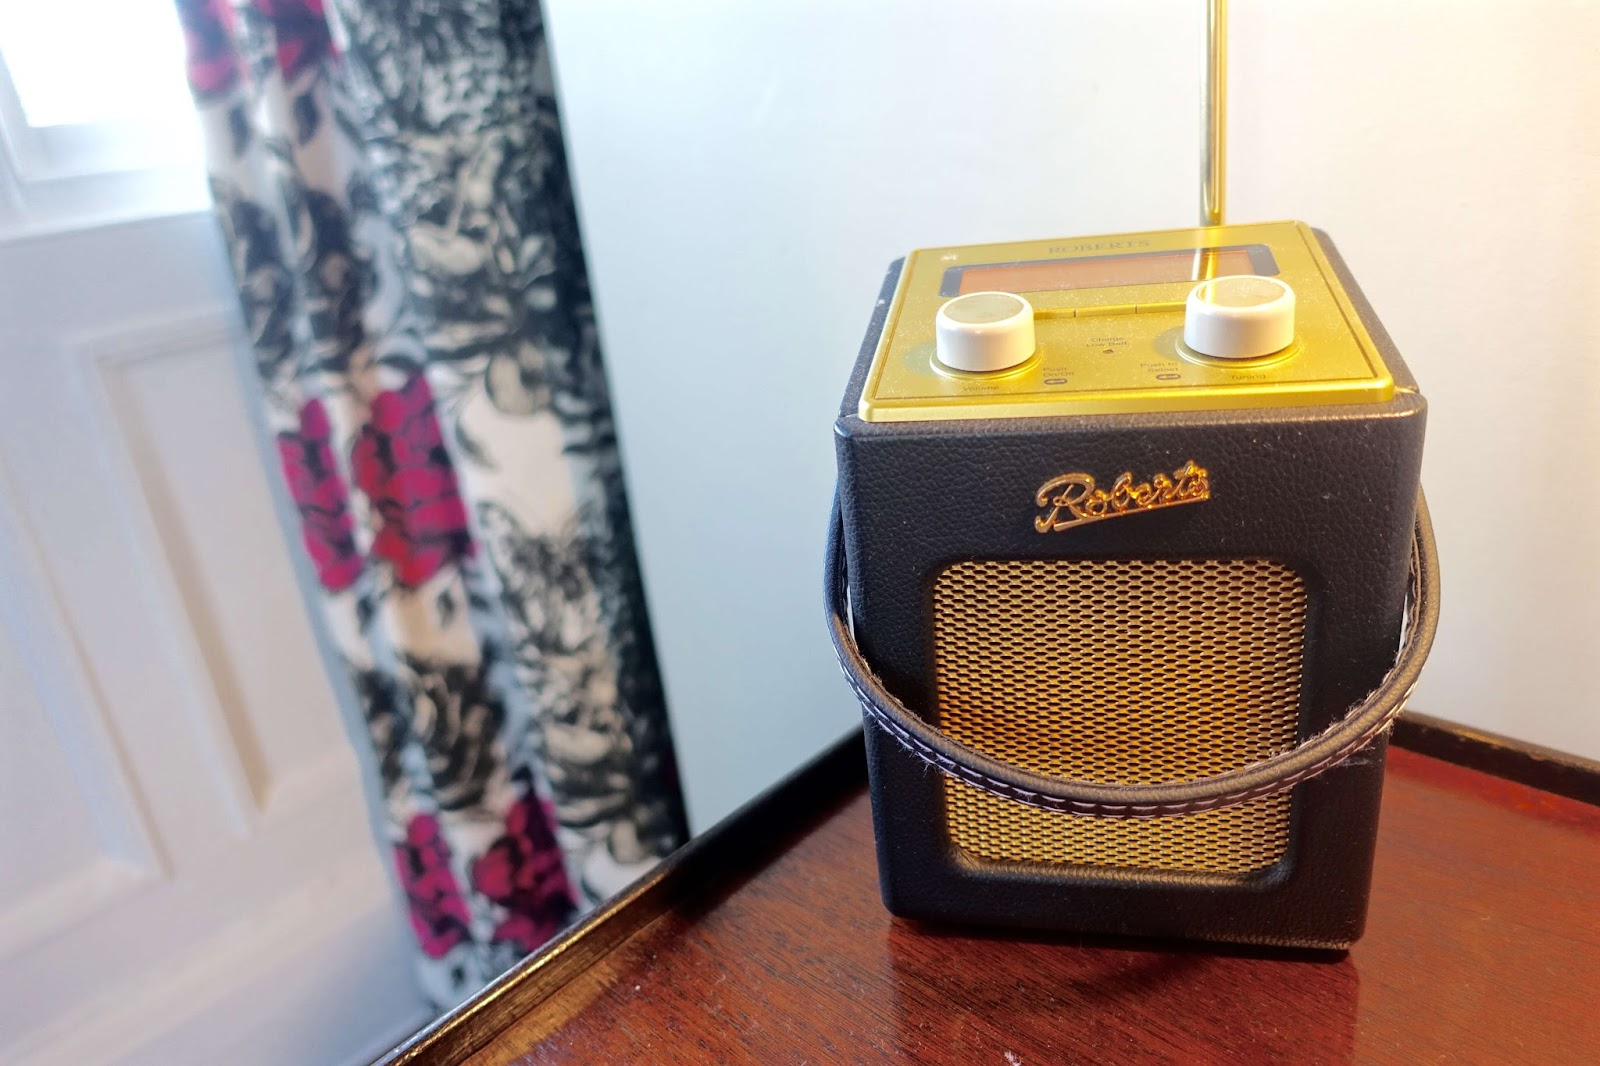 retro DAB radio burley manor